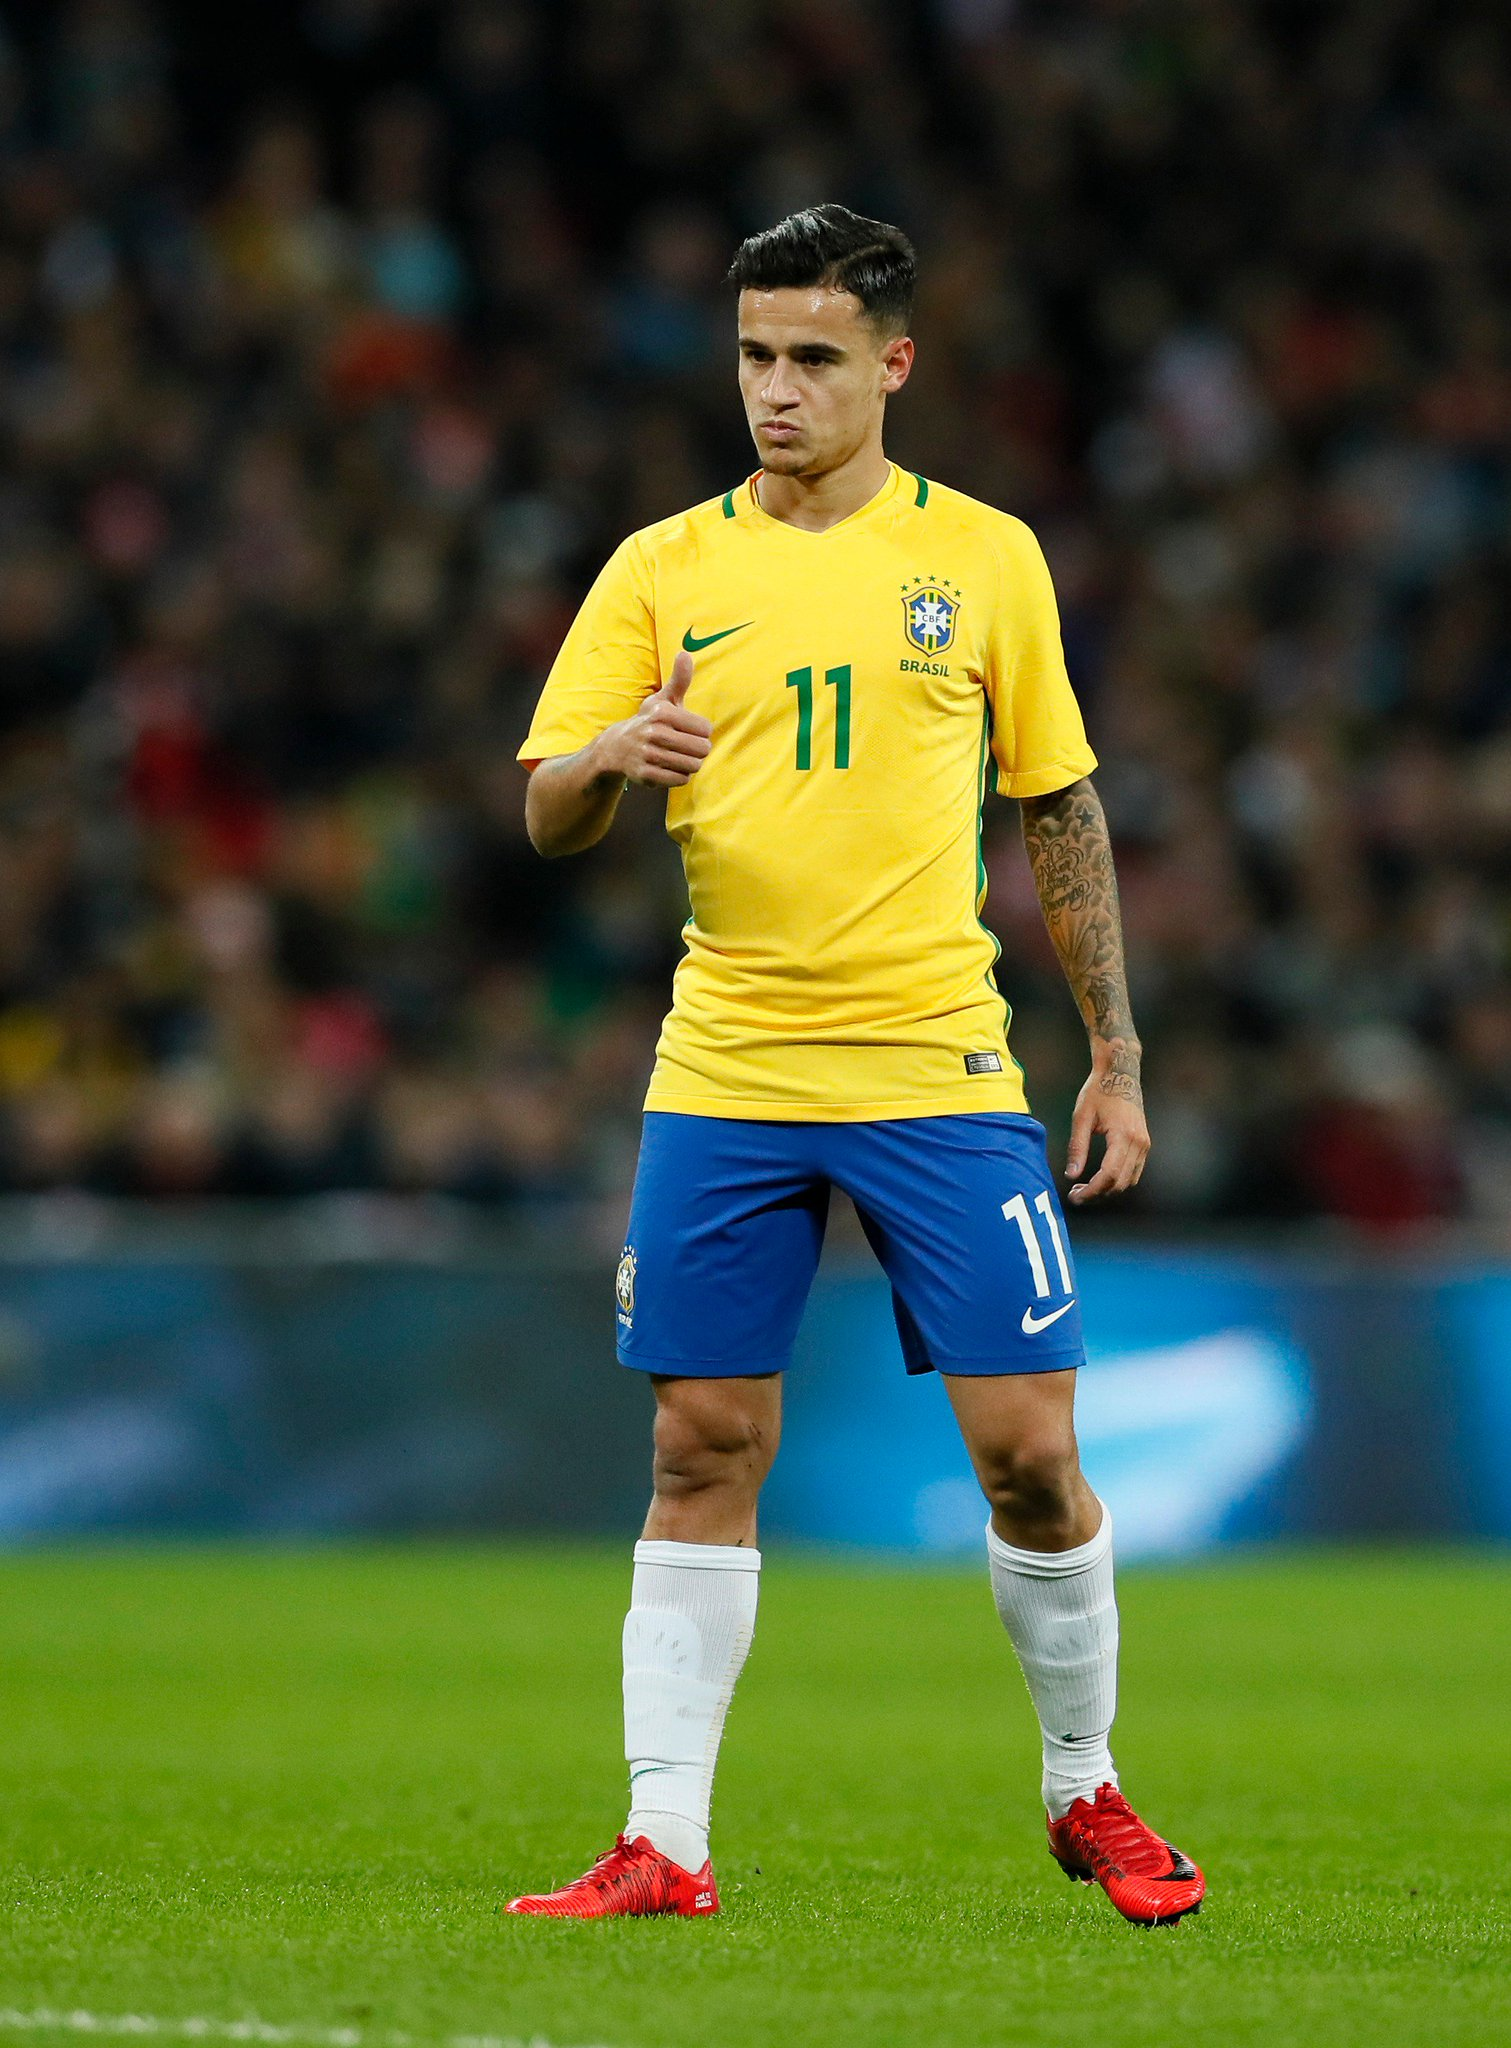 Happy birthday, Philippe Coutinho! Who thinks he can lead Brazil to World Cup glory this year...?!